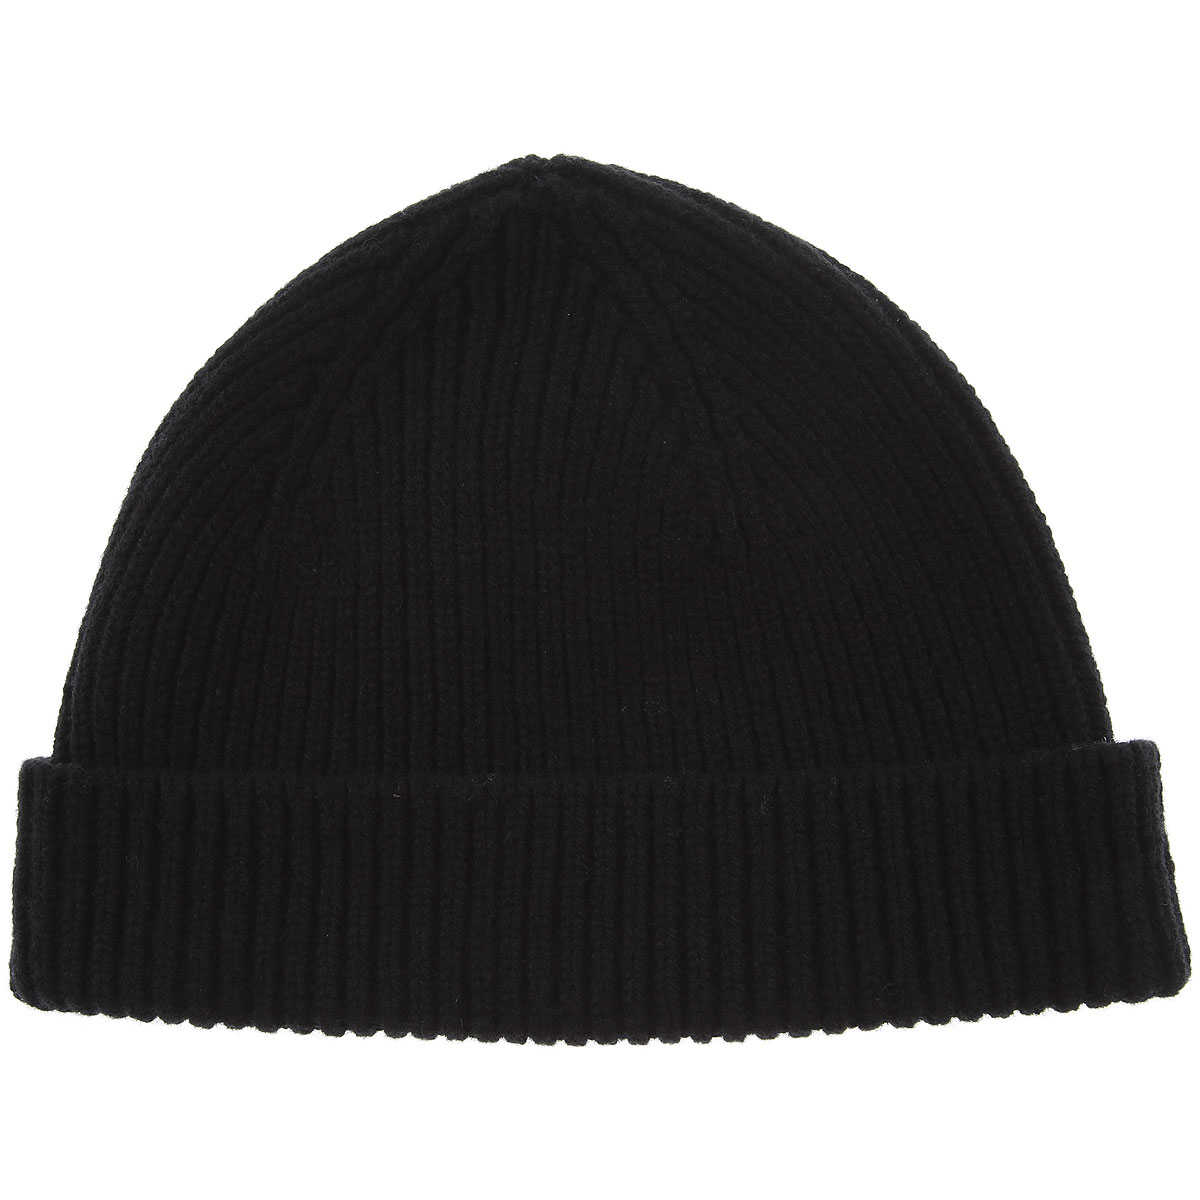 Paul Smith Hat for Women in Outlet Black USA - GOOFASH